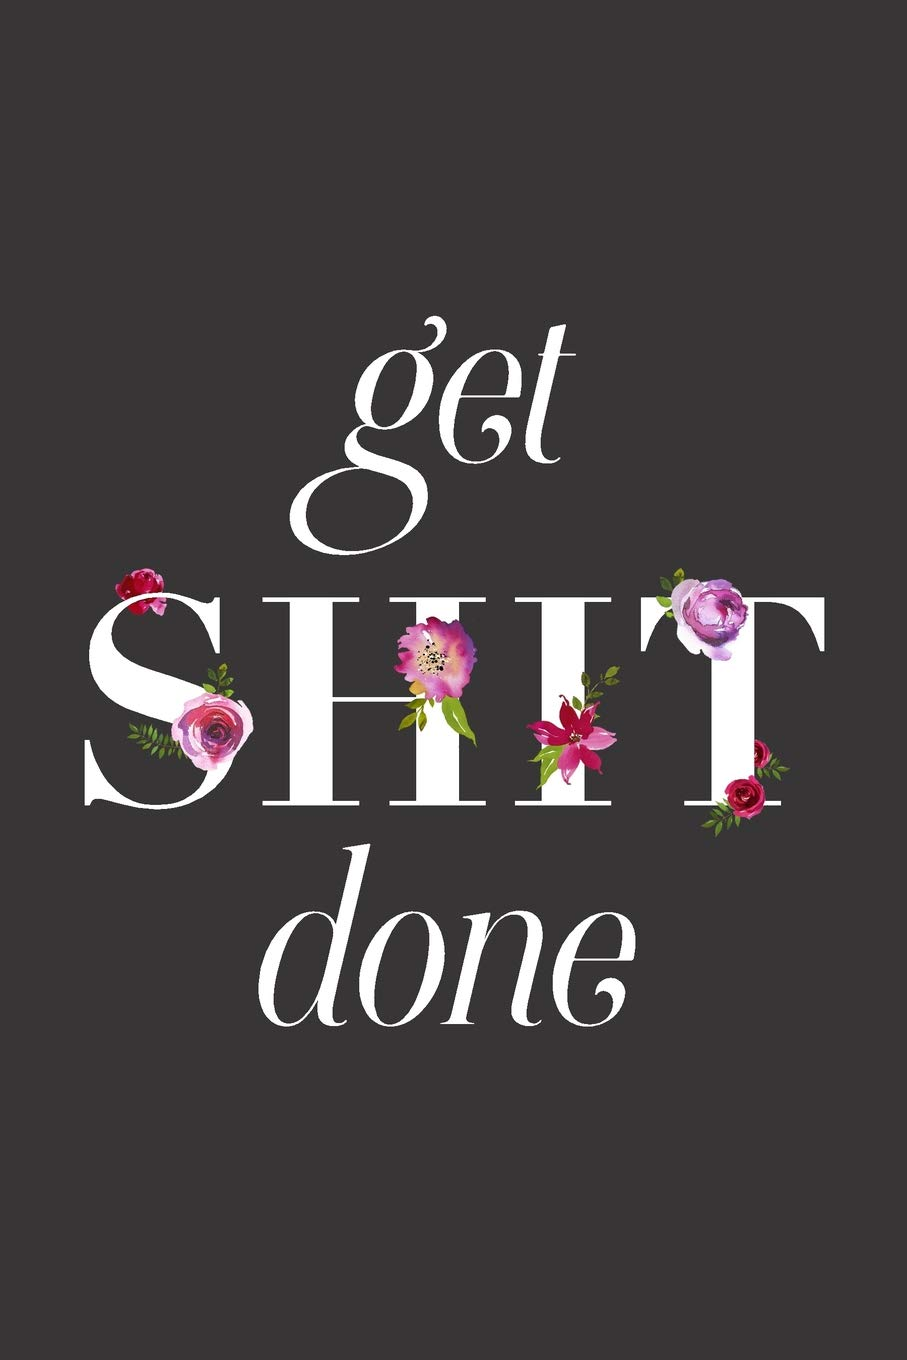 get shit done 18 month weekly monthly planner 2018 2019 floral text july 2018 december 2019 6 x 9 2018 2019 18 month daily weekly monthly planner organizer agenda and calendar